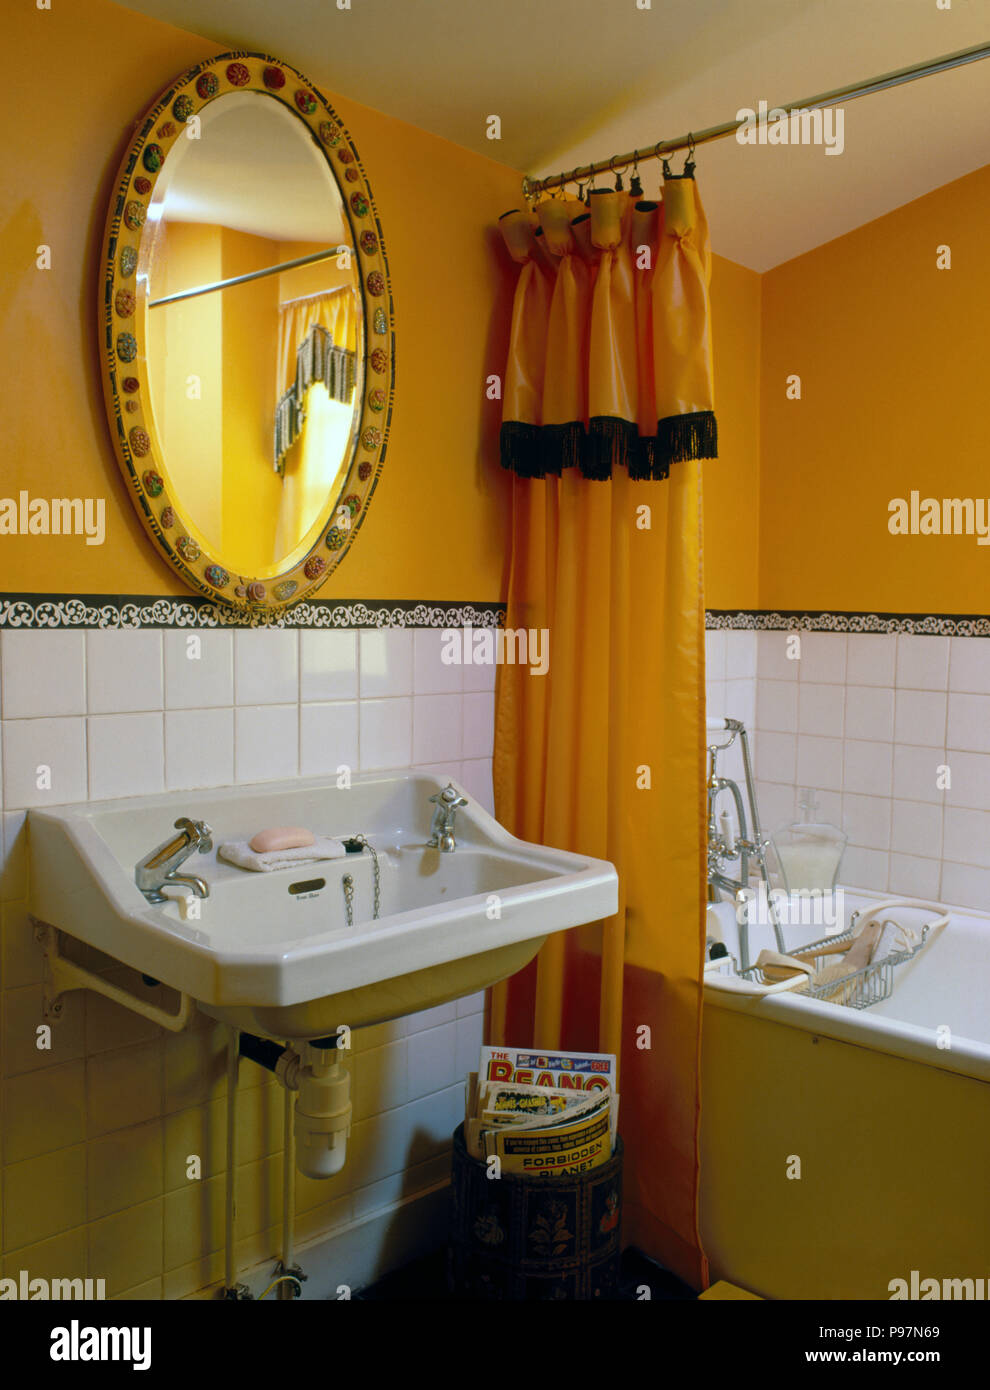 Oval Mirror Above Basin In A Bright Yellow Nineties Bathroom With Shower Curtain On The Bath